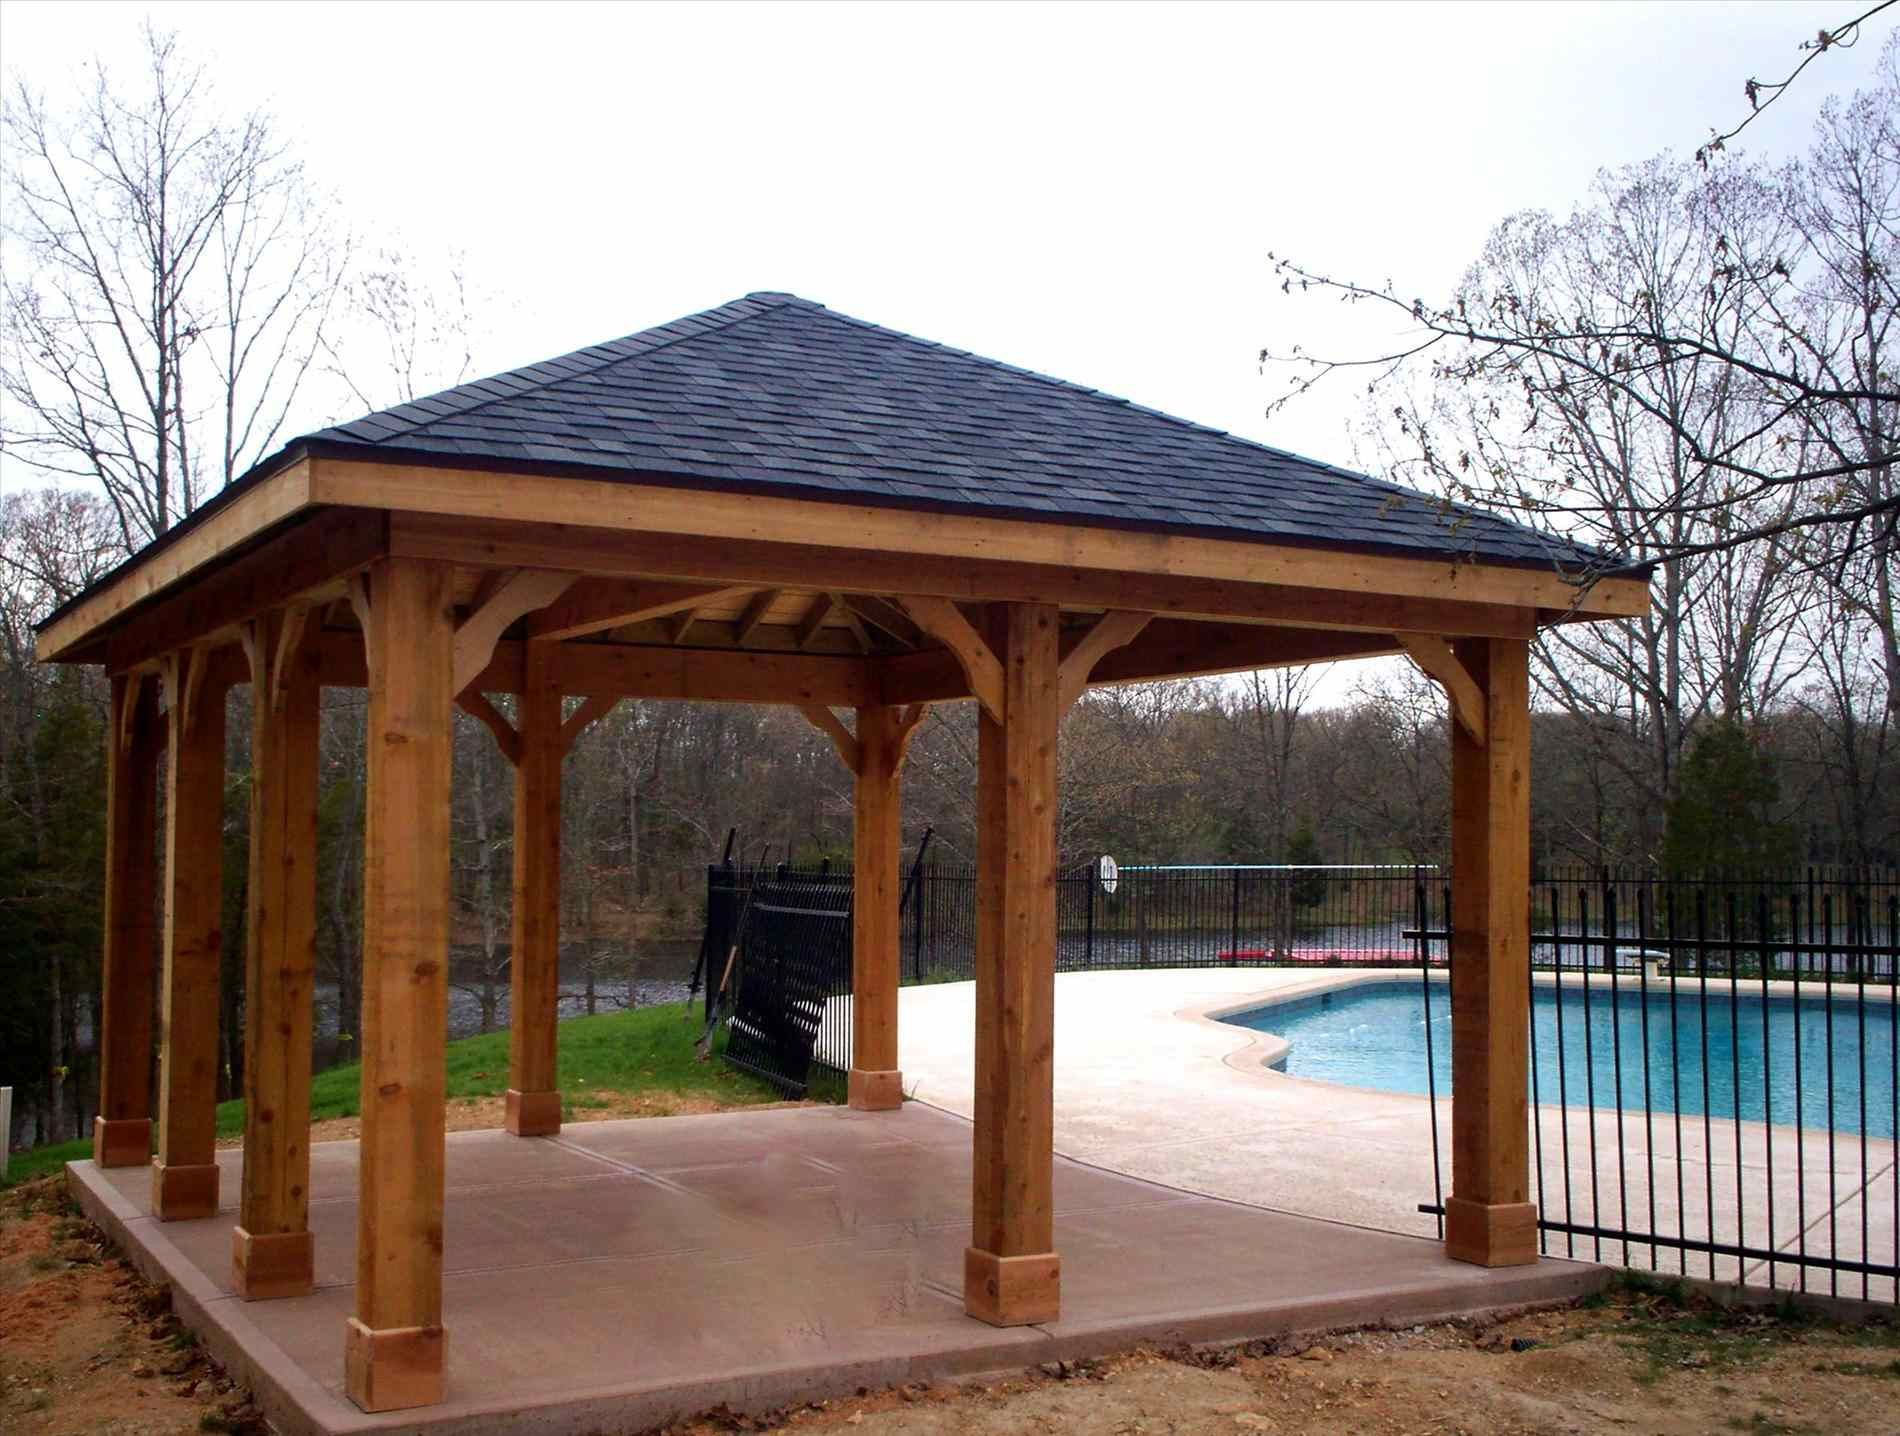 Patio Roof Ideas South Africa Home Roof Ideas Covered Patio Design Outdoor Covered Patio Patio Design